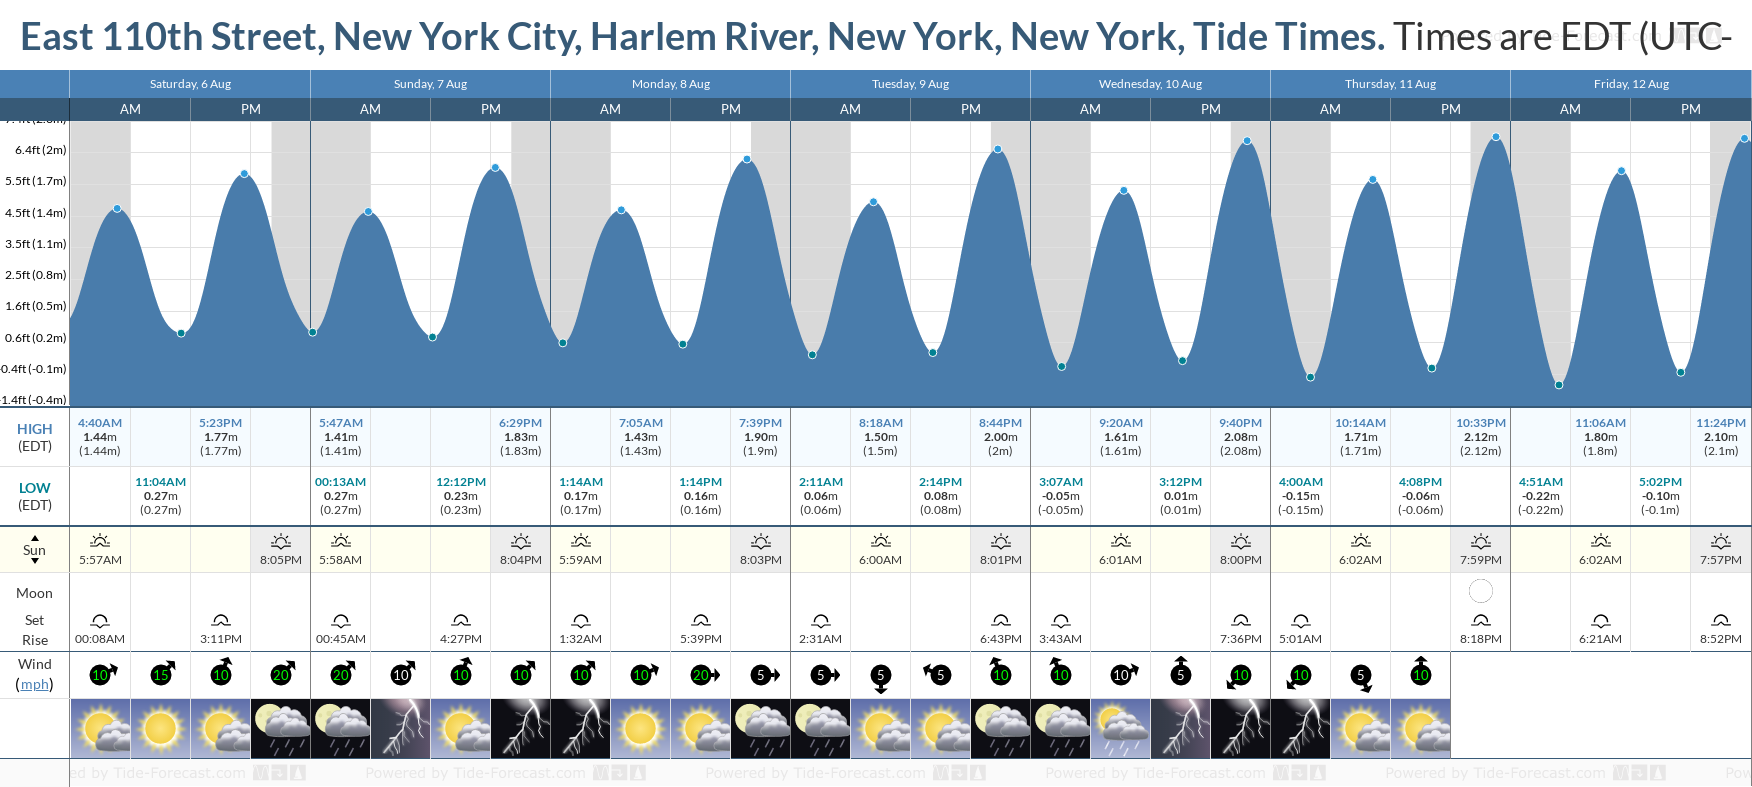 East 110th Street, New York City, Harlem River, New York, New York Tide Chart including high and low tide tide times for the next 7 days